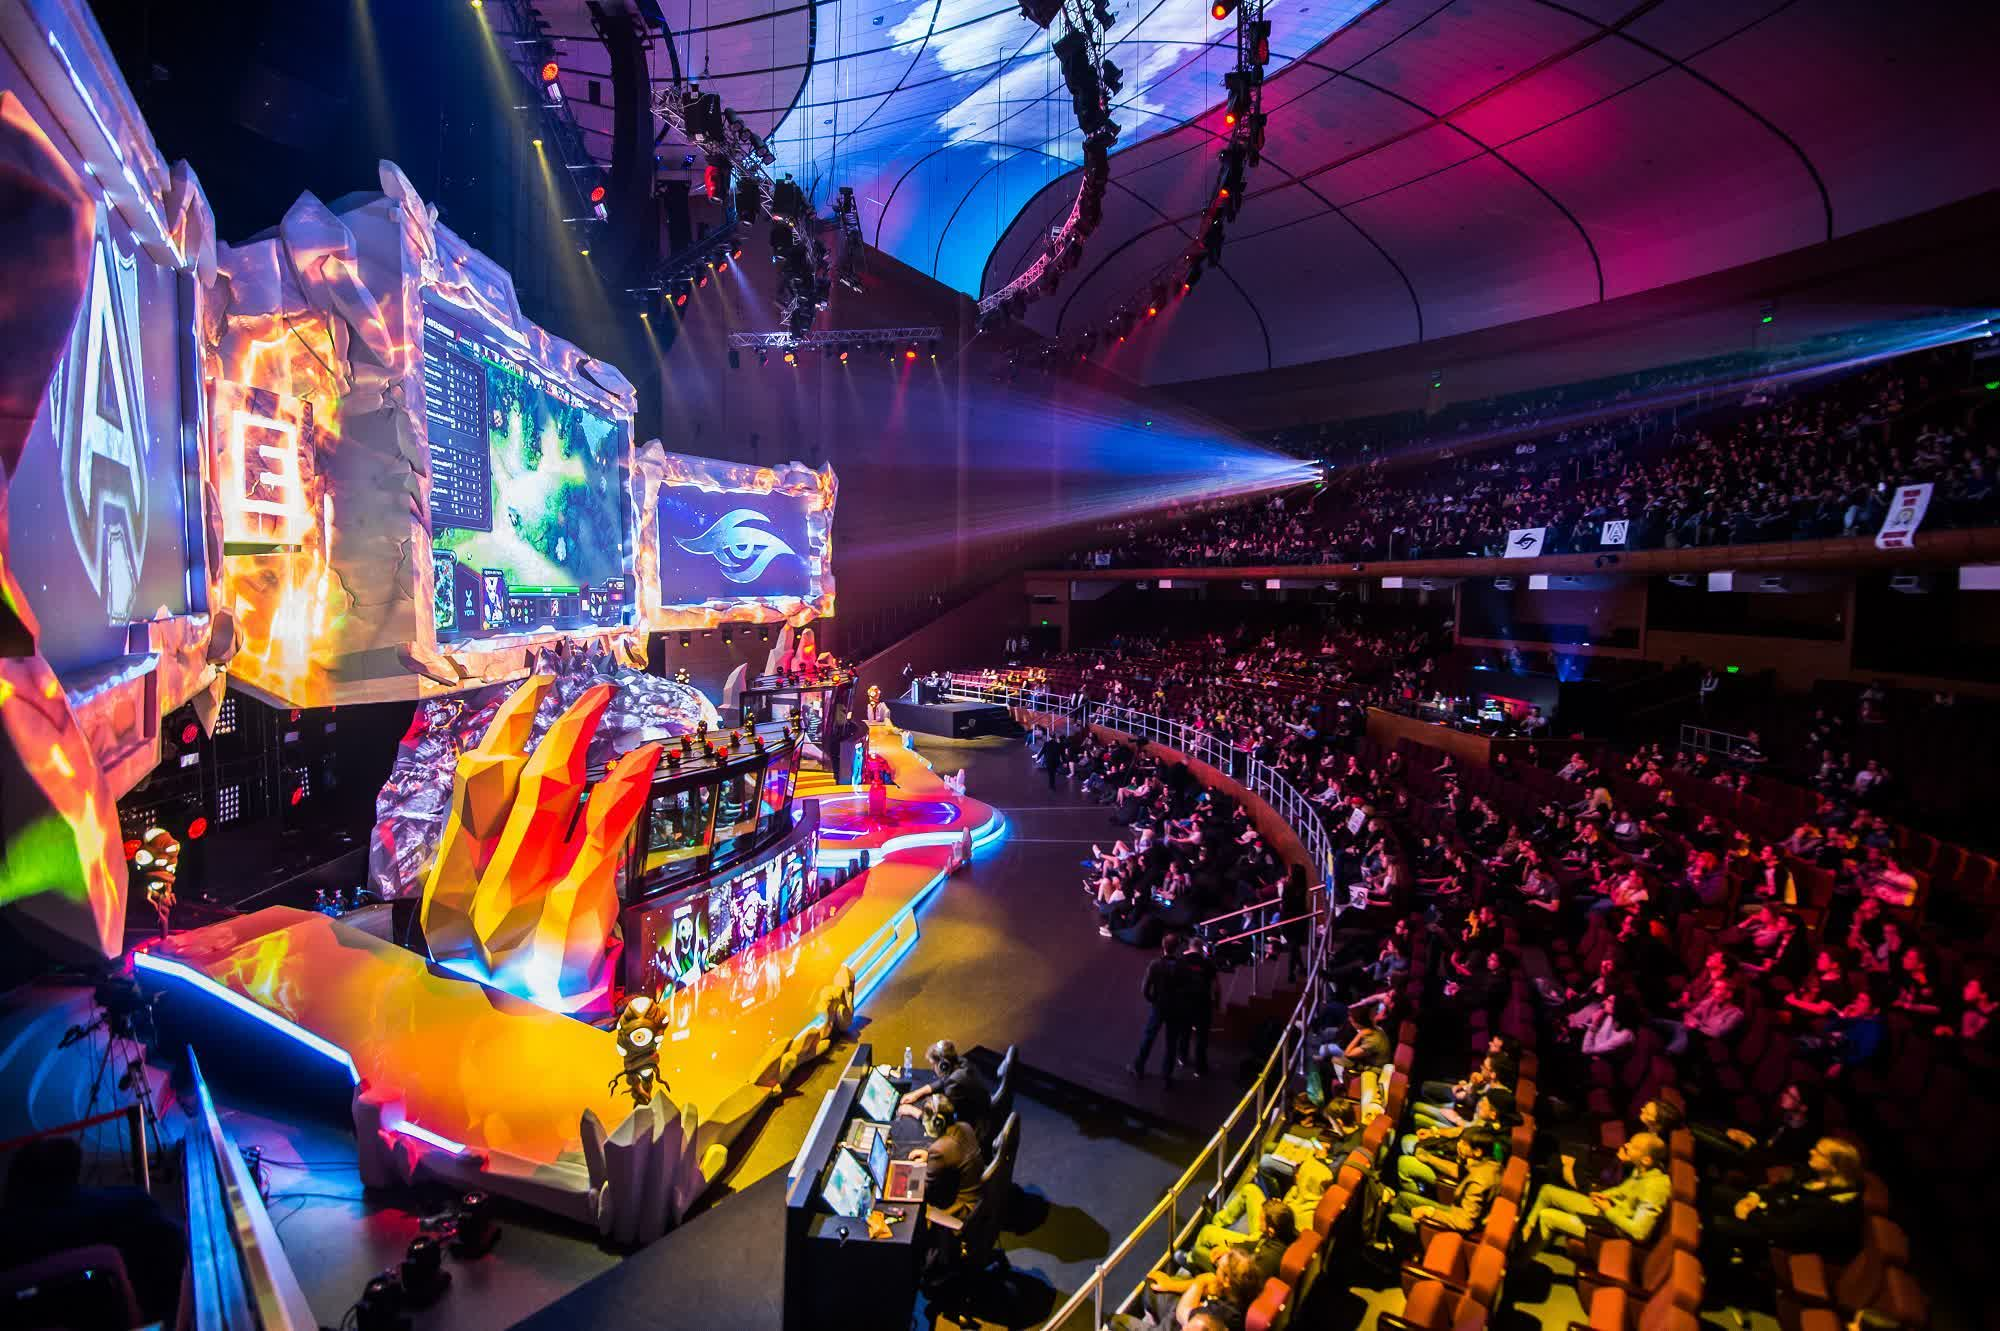 Valve is refunding all tickets for the DOTA 2 International tournament